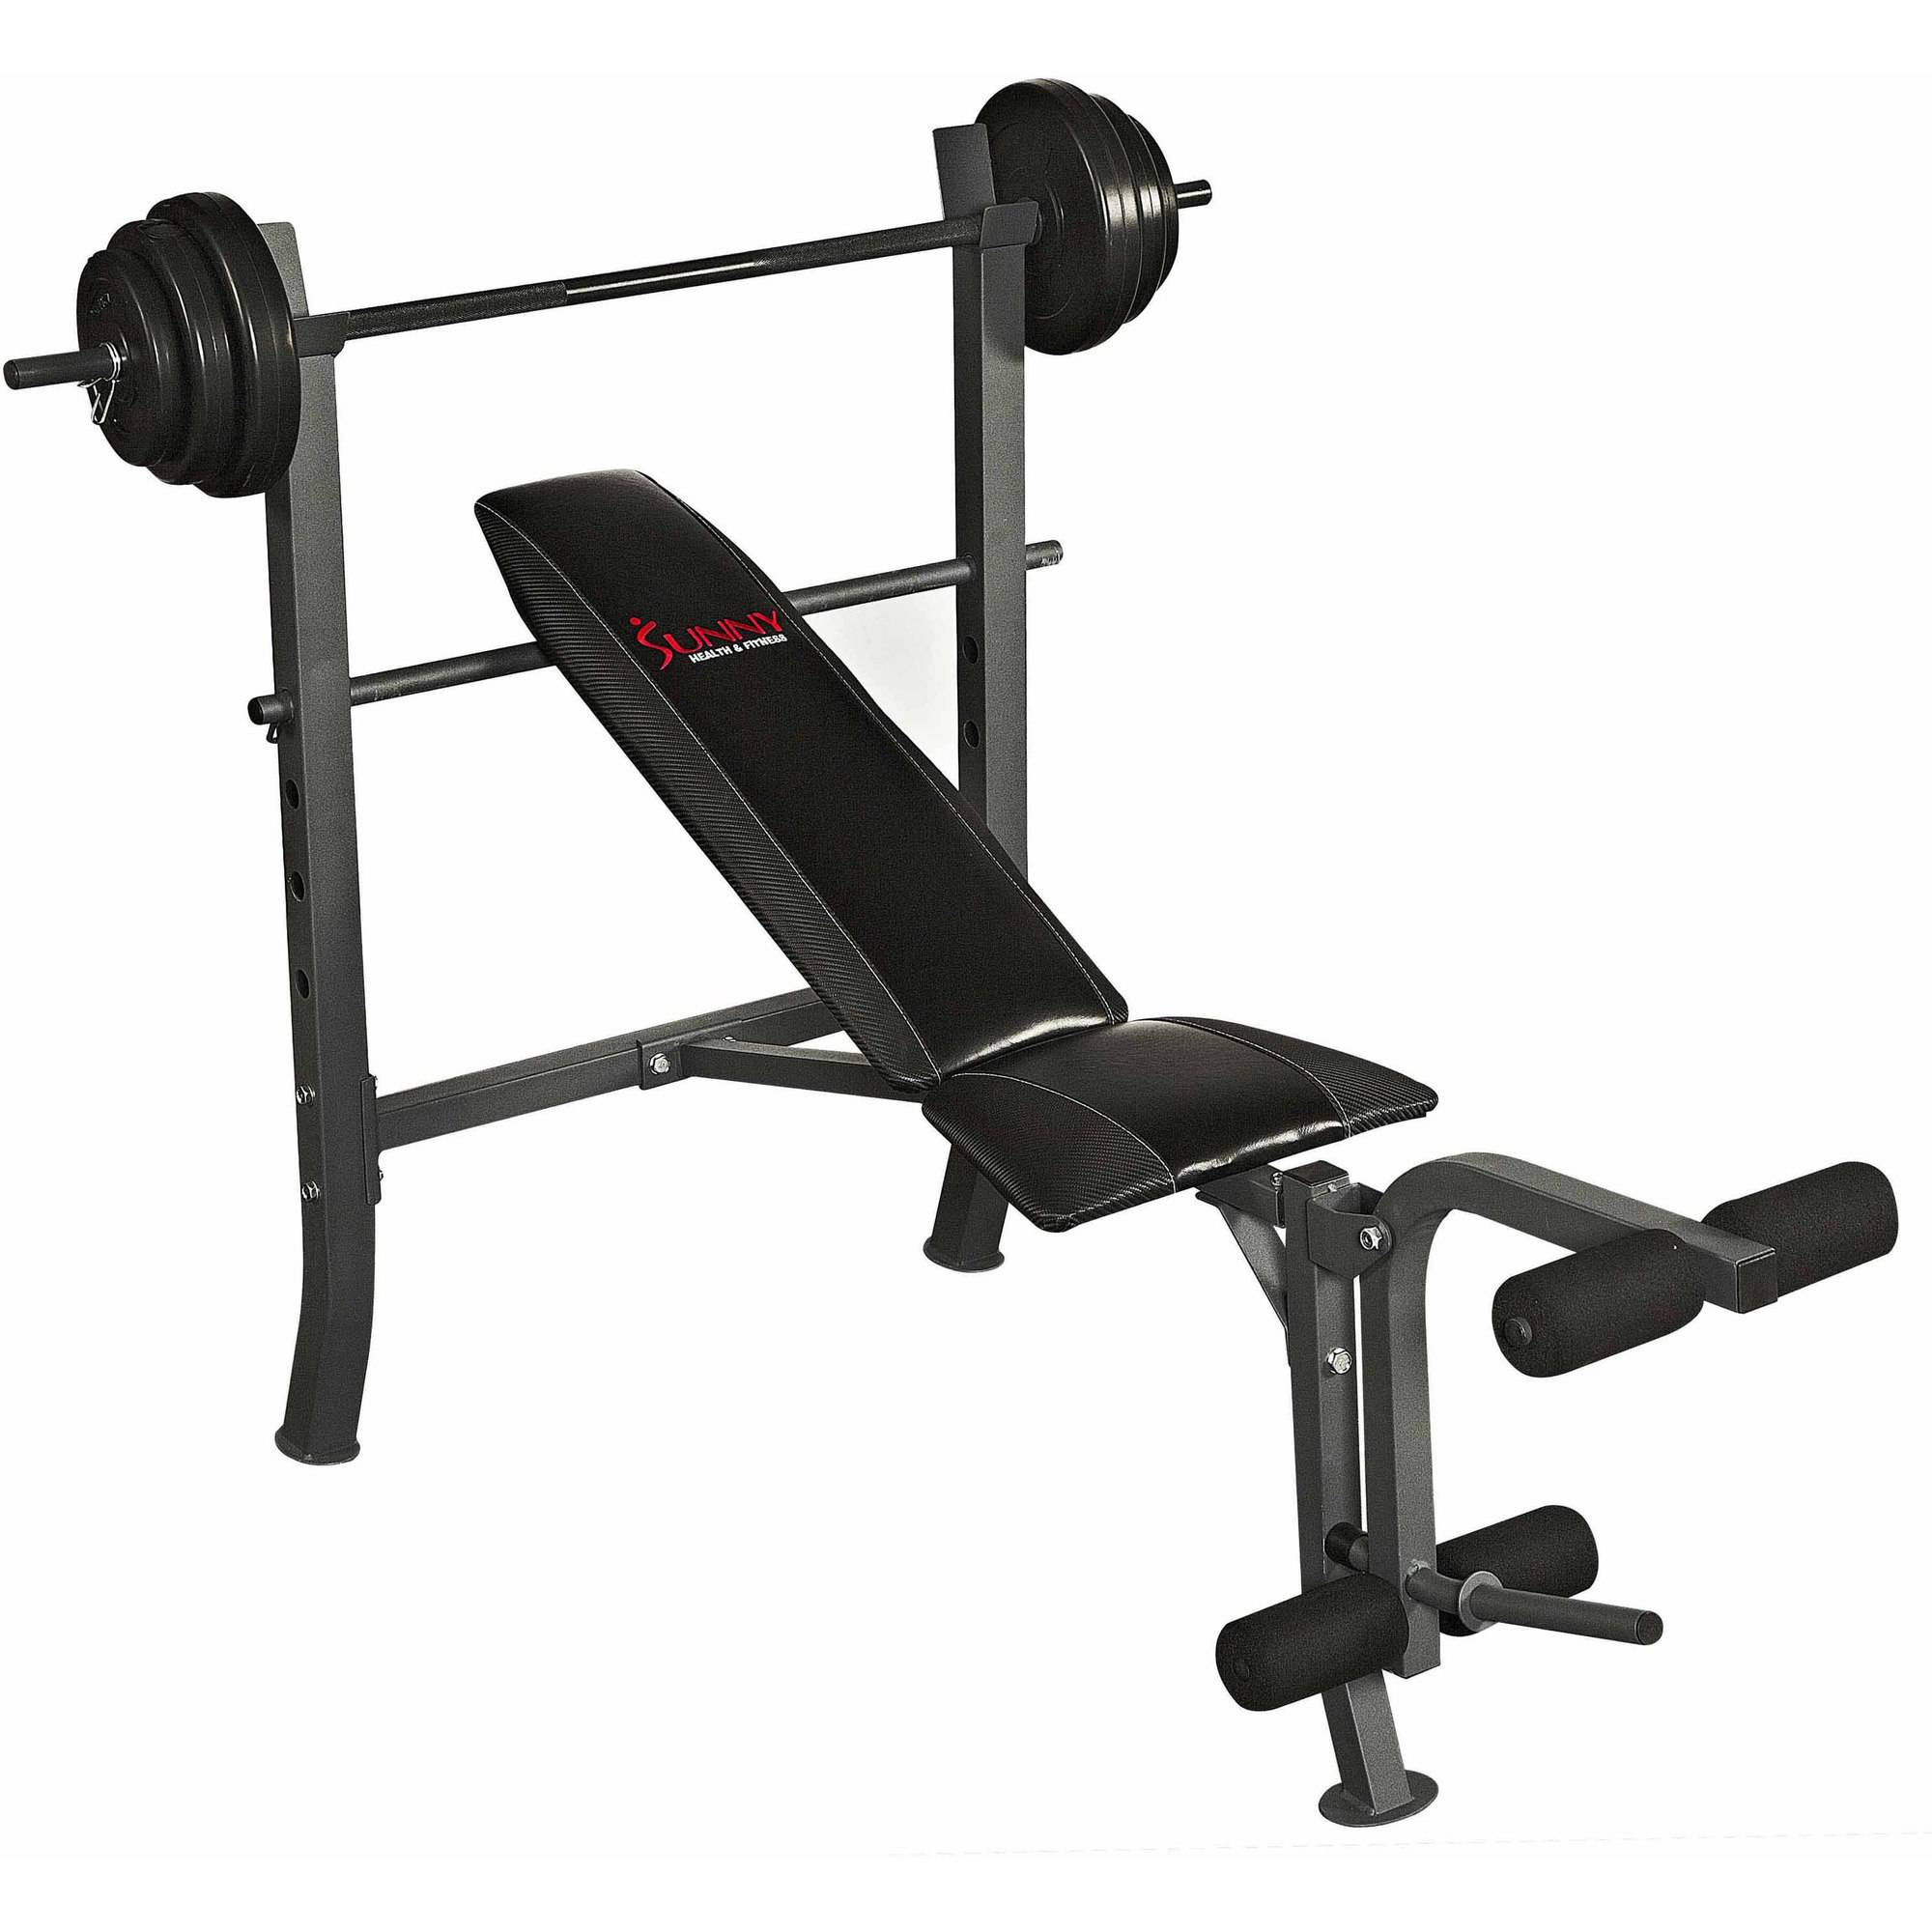 Sunny Health and Fitness SF-BH6510 100 lb Weight/Bench Set